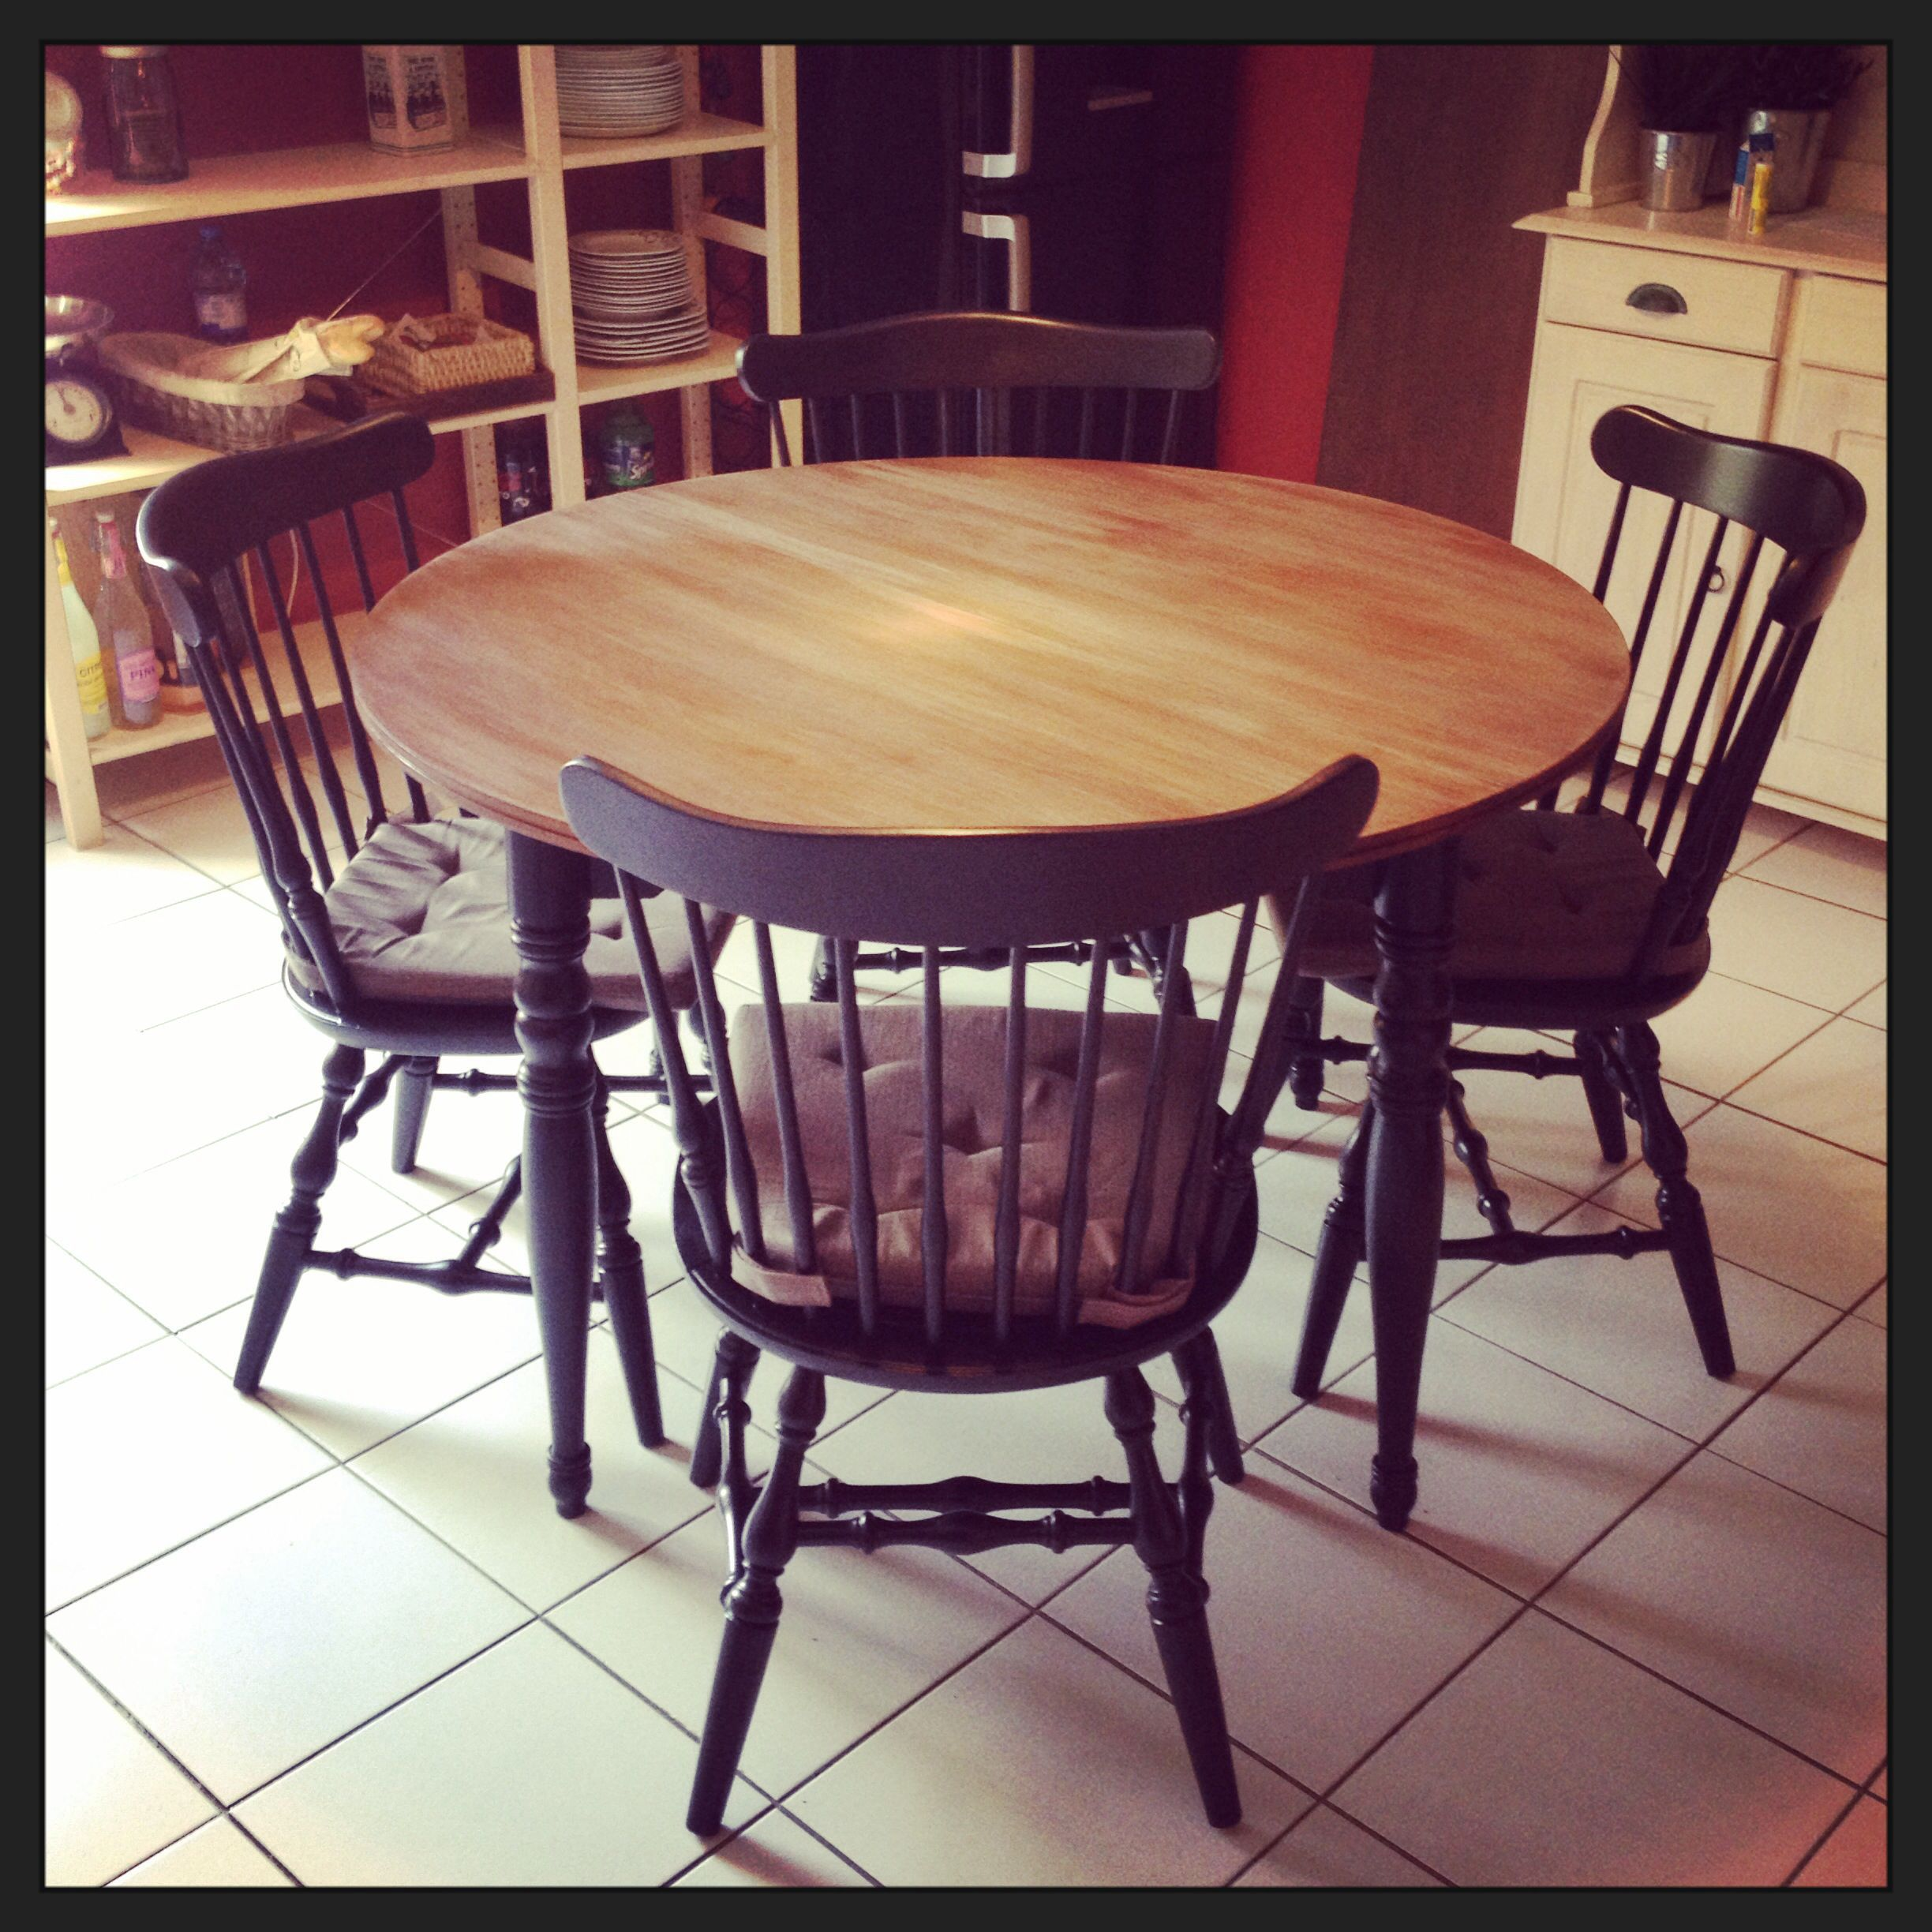 New trend painted chairs with dipped or raw legs jelanie - Table Et Chaises Western R Nov Es Brocante Homemade